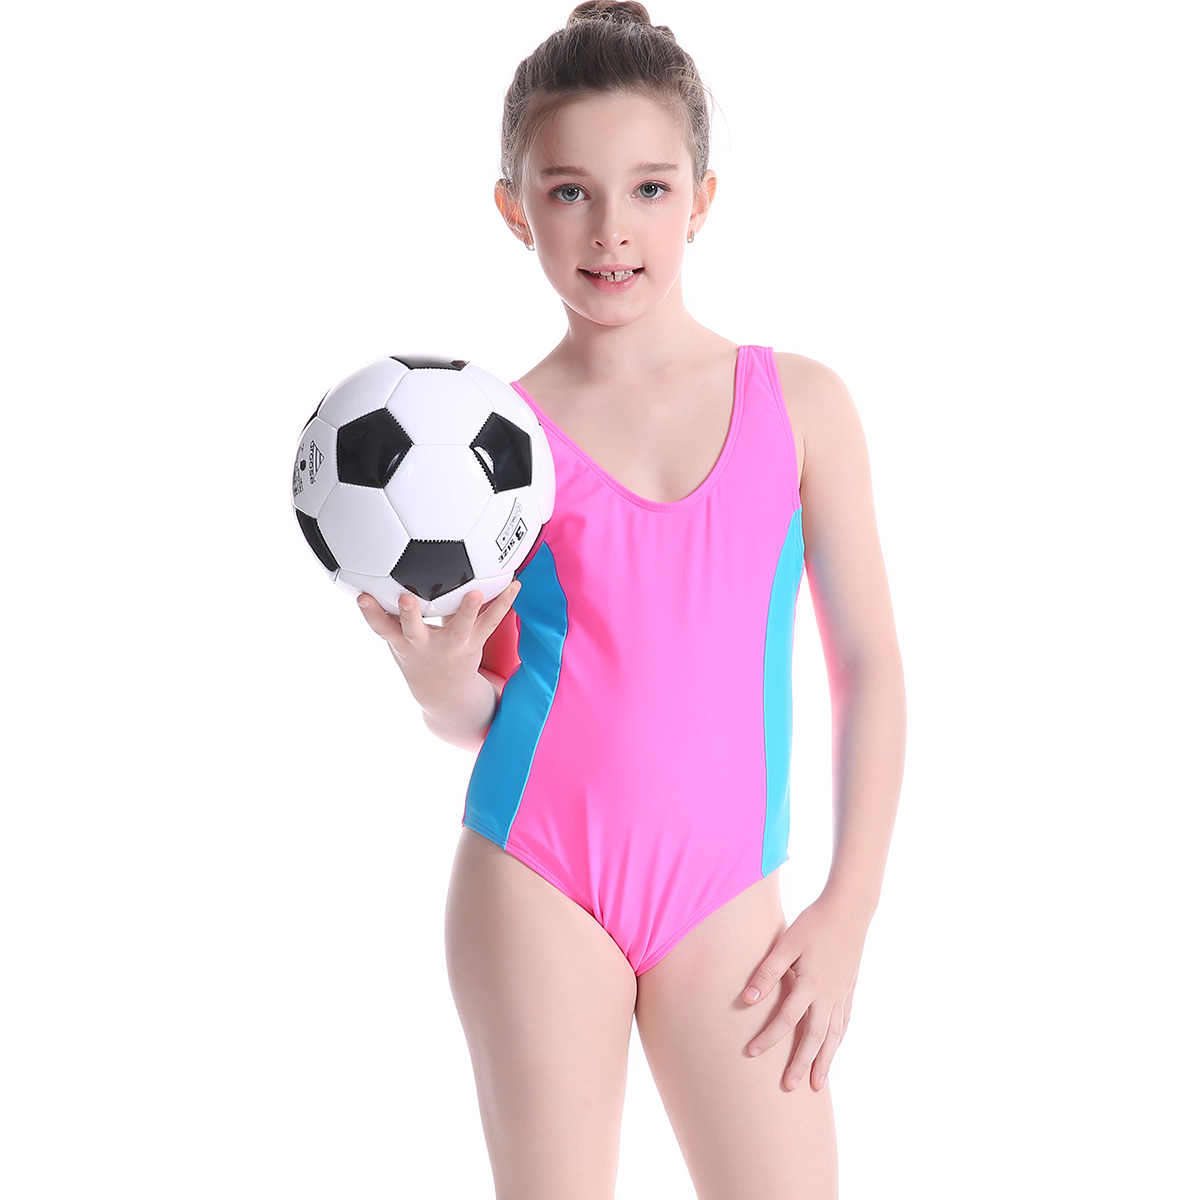 Children Swimsuit One Piece Girl Print Black Swimwear Baby Swim Child Sports Bodysuit Bathing Suit For Girls 1-4 Years Baby Children Sportswear & Accessories